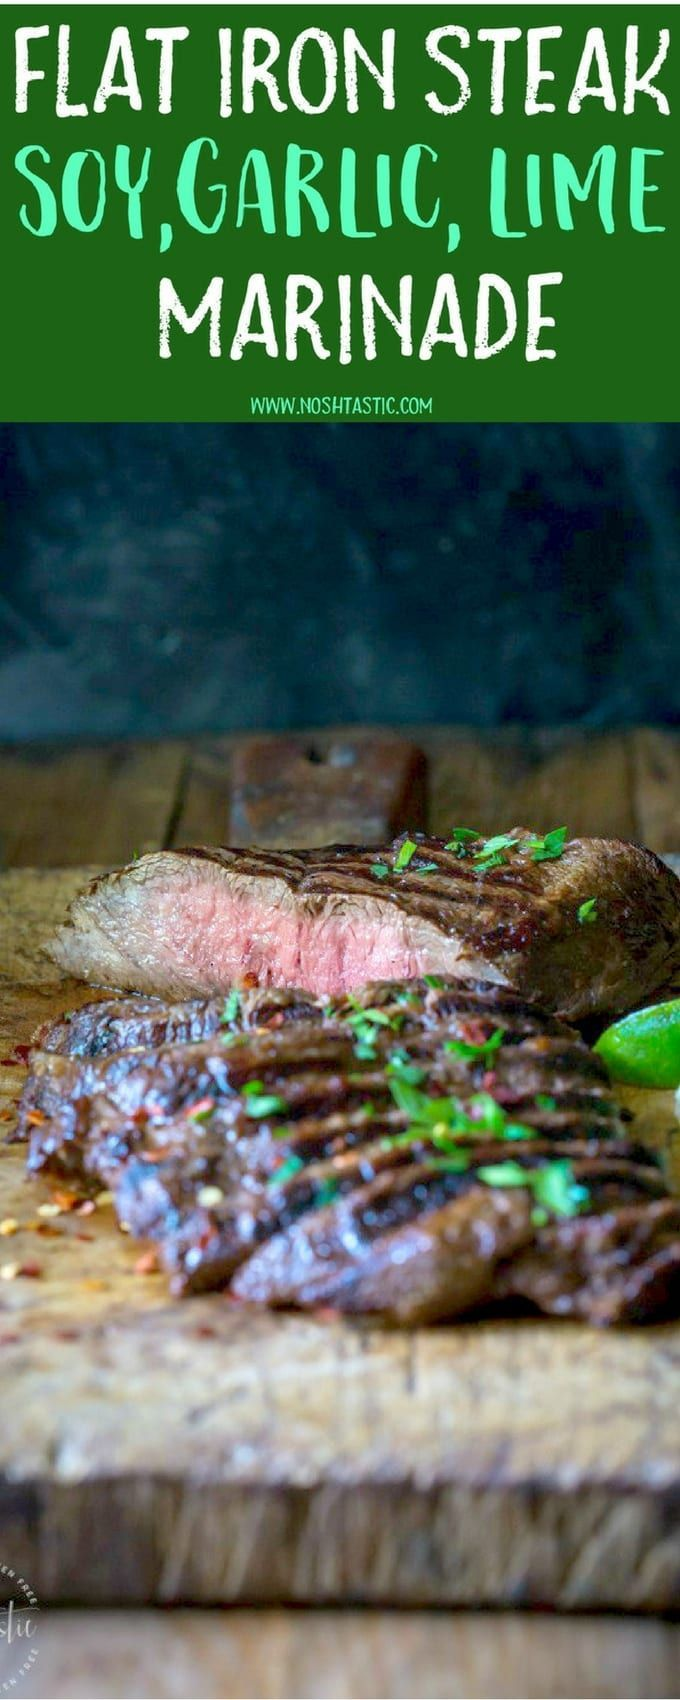 This marinaded Grilled Flat Iron Steak is so simple to prepare and just melts in your mouth! marinated in lime juice, soy sauce and garlic   Gluten Free with Paleo and whole30 Options  